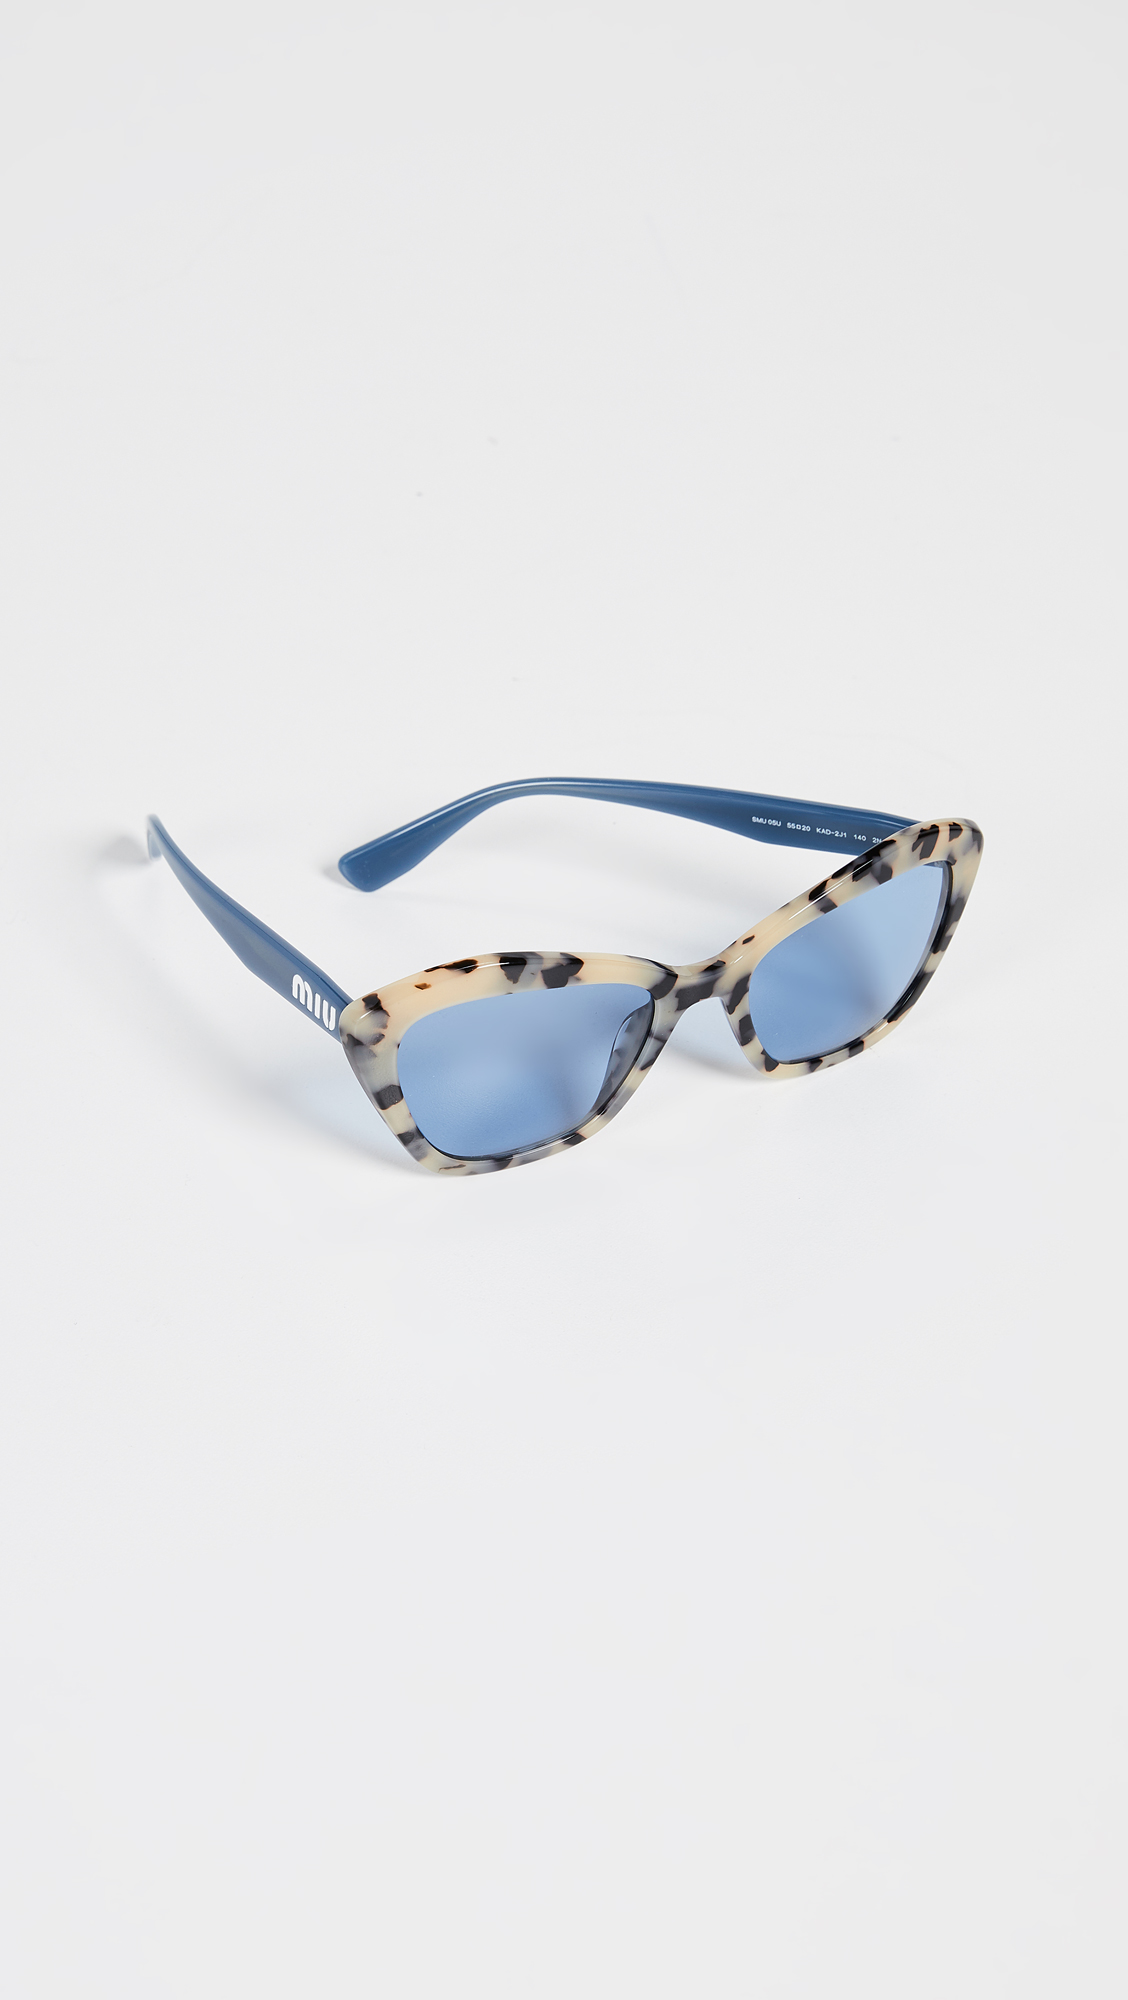 ec70ee94ced Miu Miu Acetate Cat Eye Sunglasses